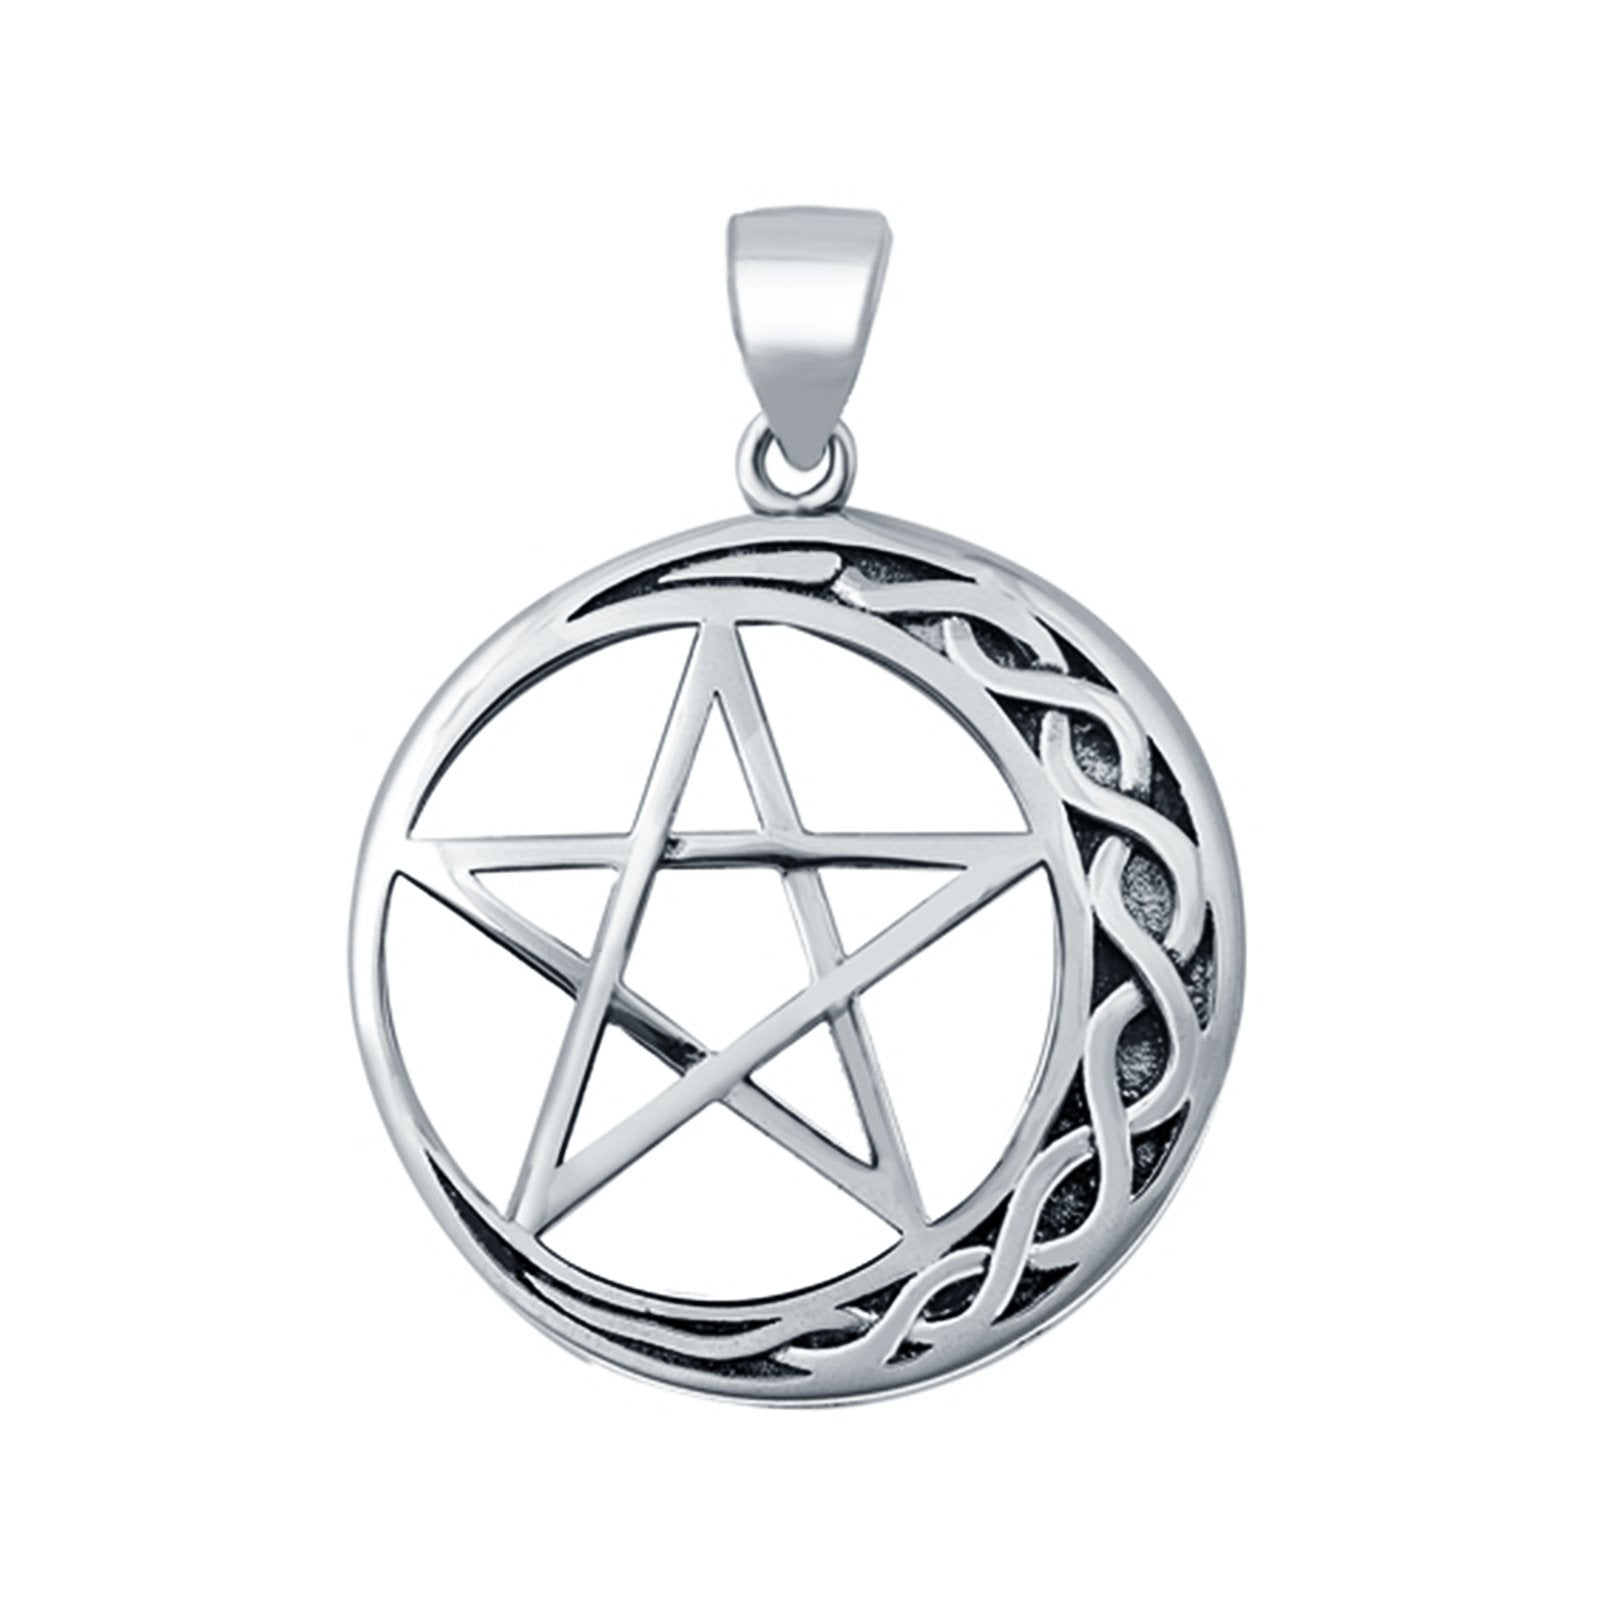 Moon and Star Pendant Charm Round 925 Sterling Silver